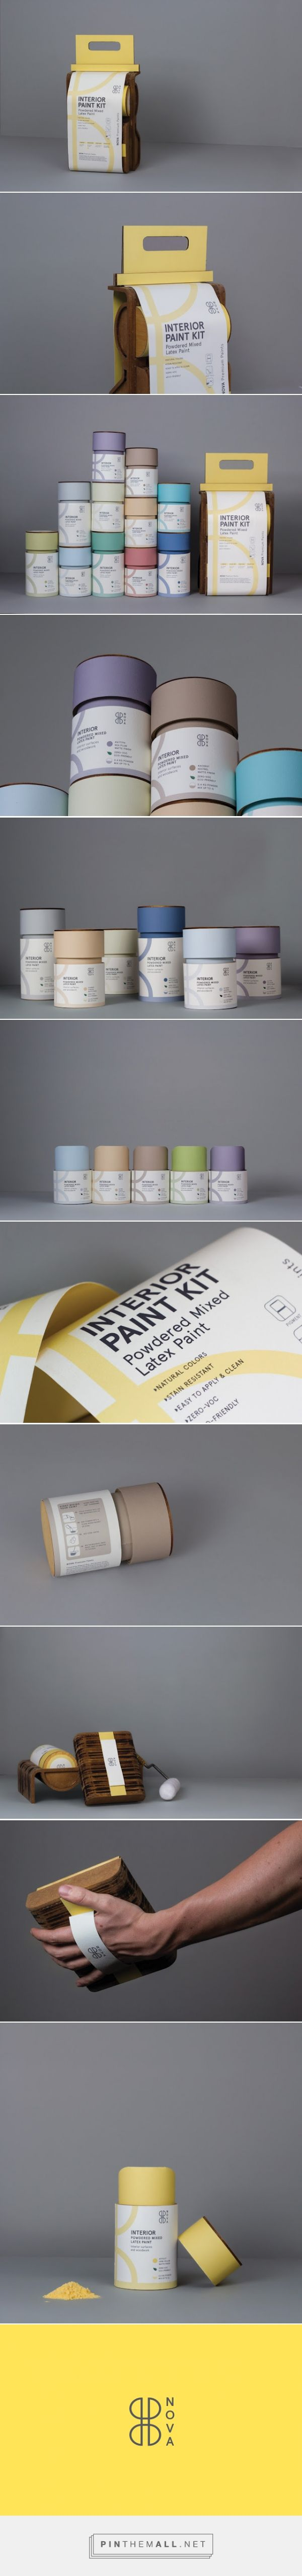 Nova Paints (Student Project) -  Packaging of the World - Creative Package Design Gallery - http://www.packagingoftheworld.com/2016/06/nova-paints-student-project.html